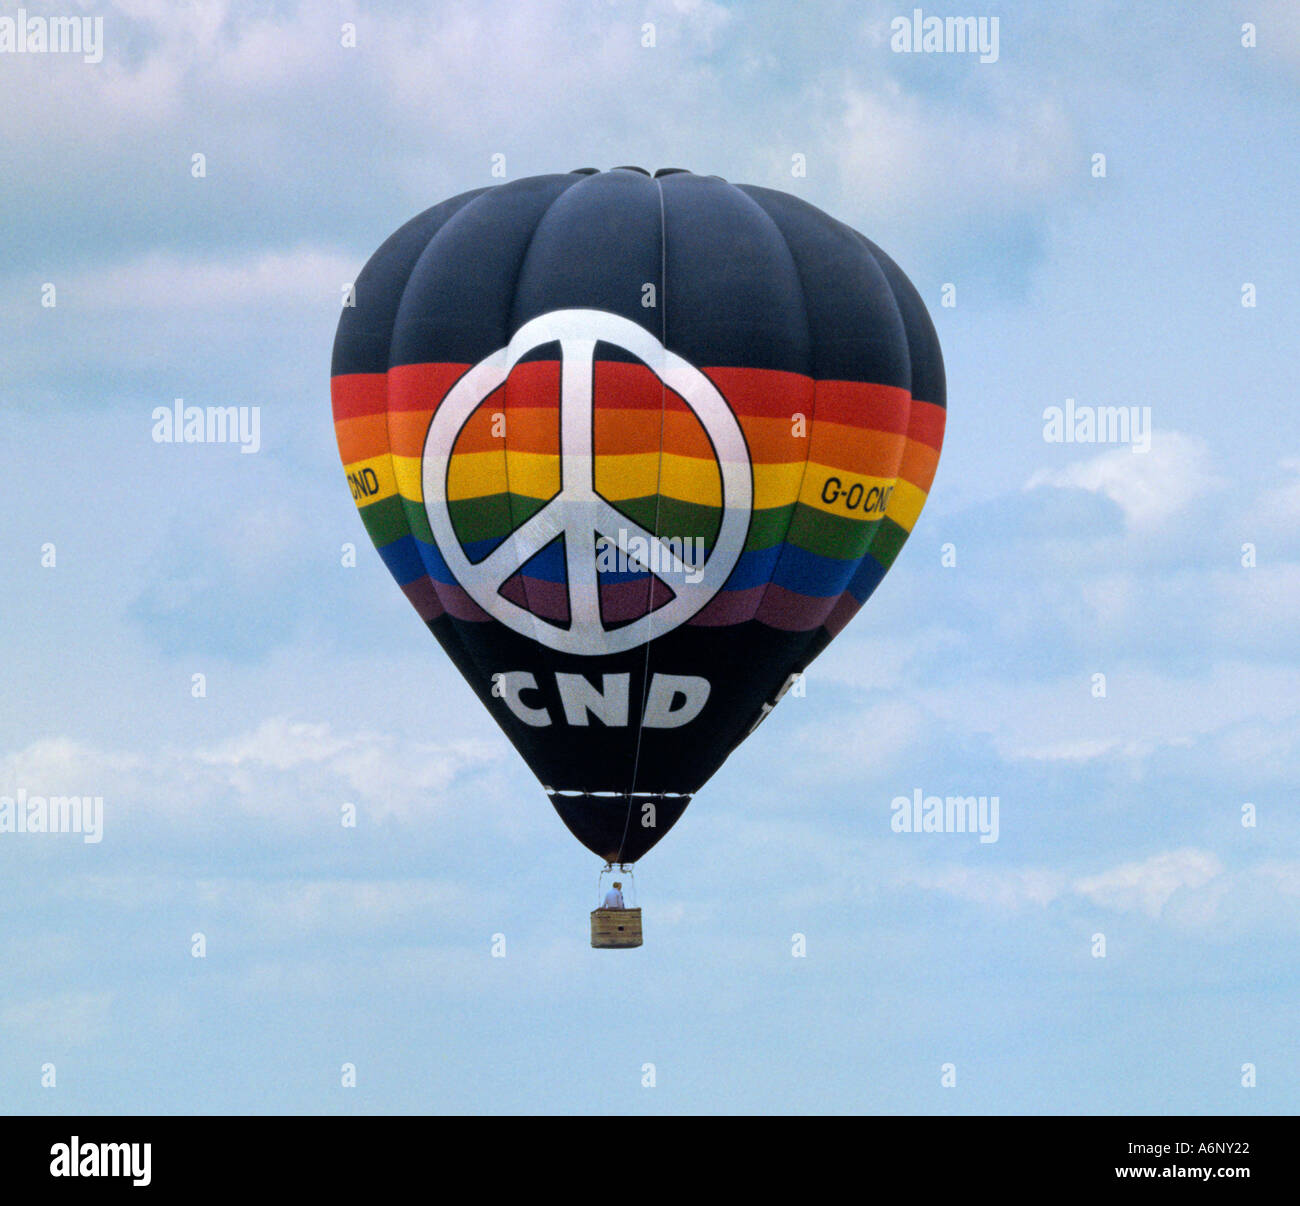 CND Balloon at CND rally - Stock Image